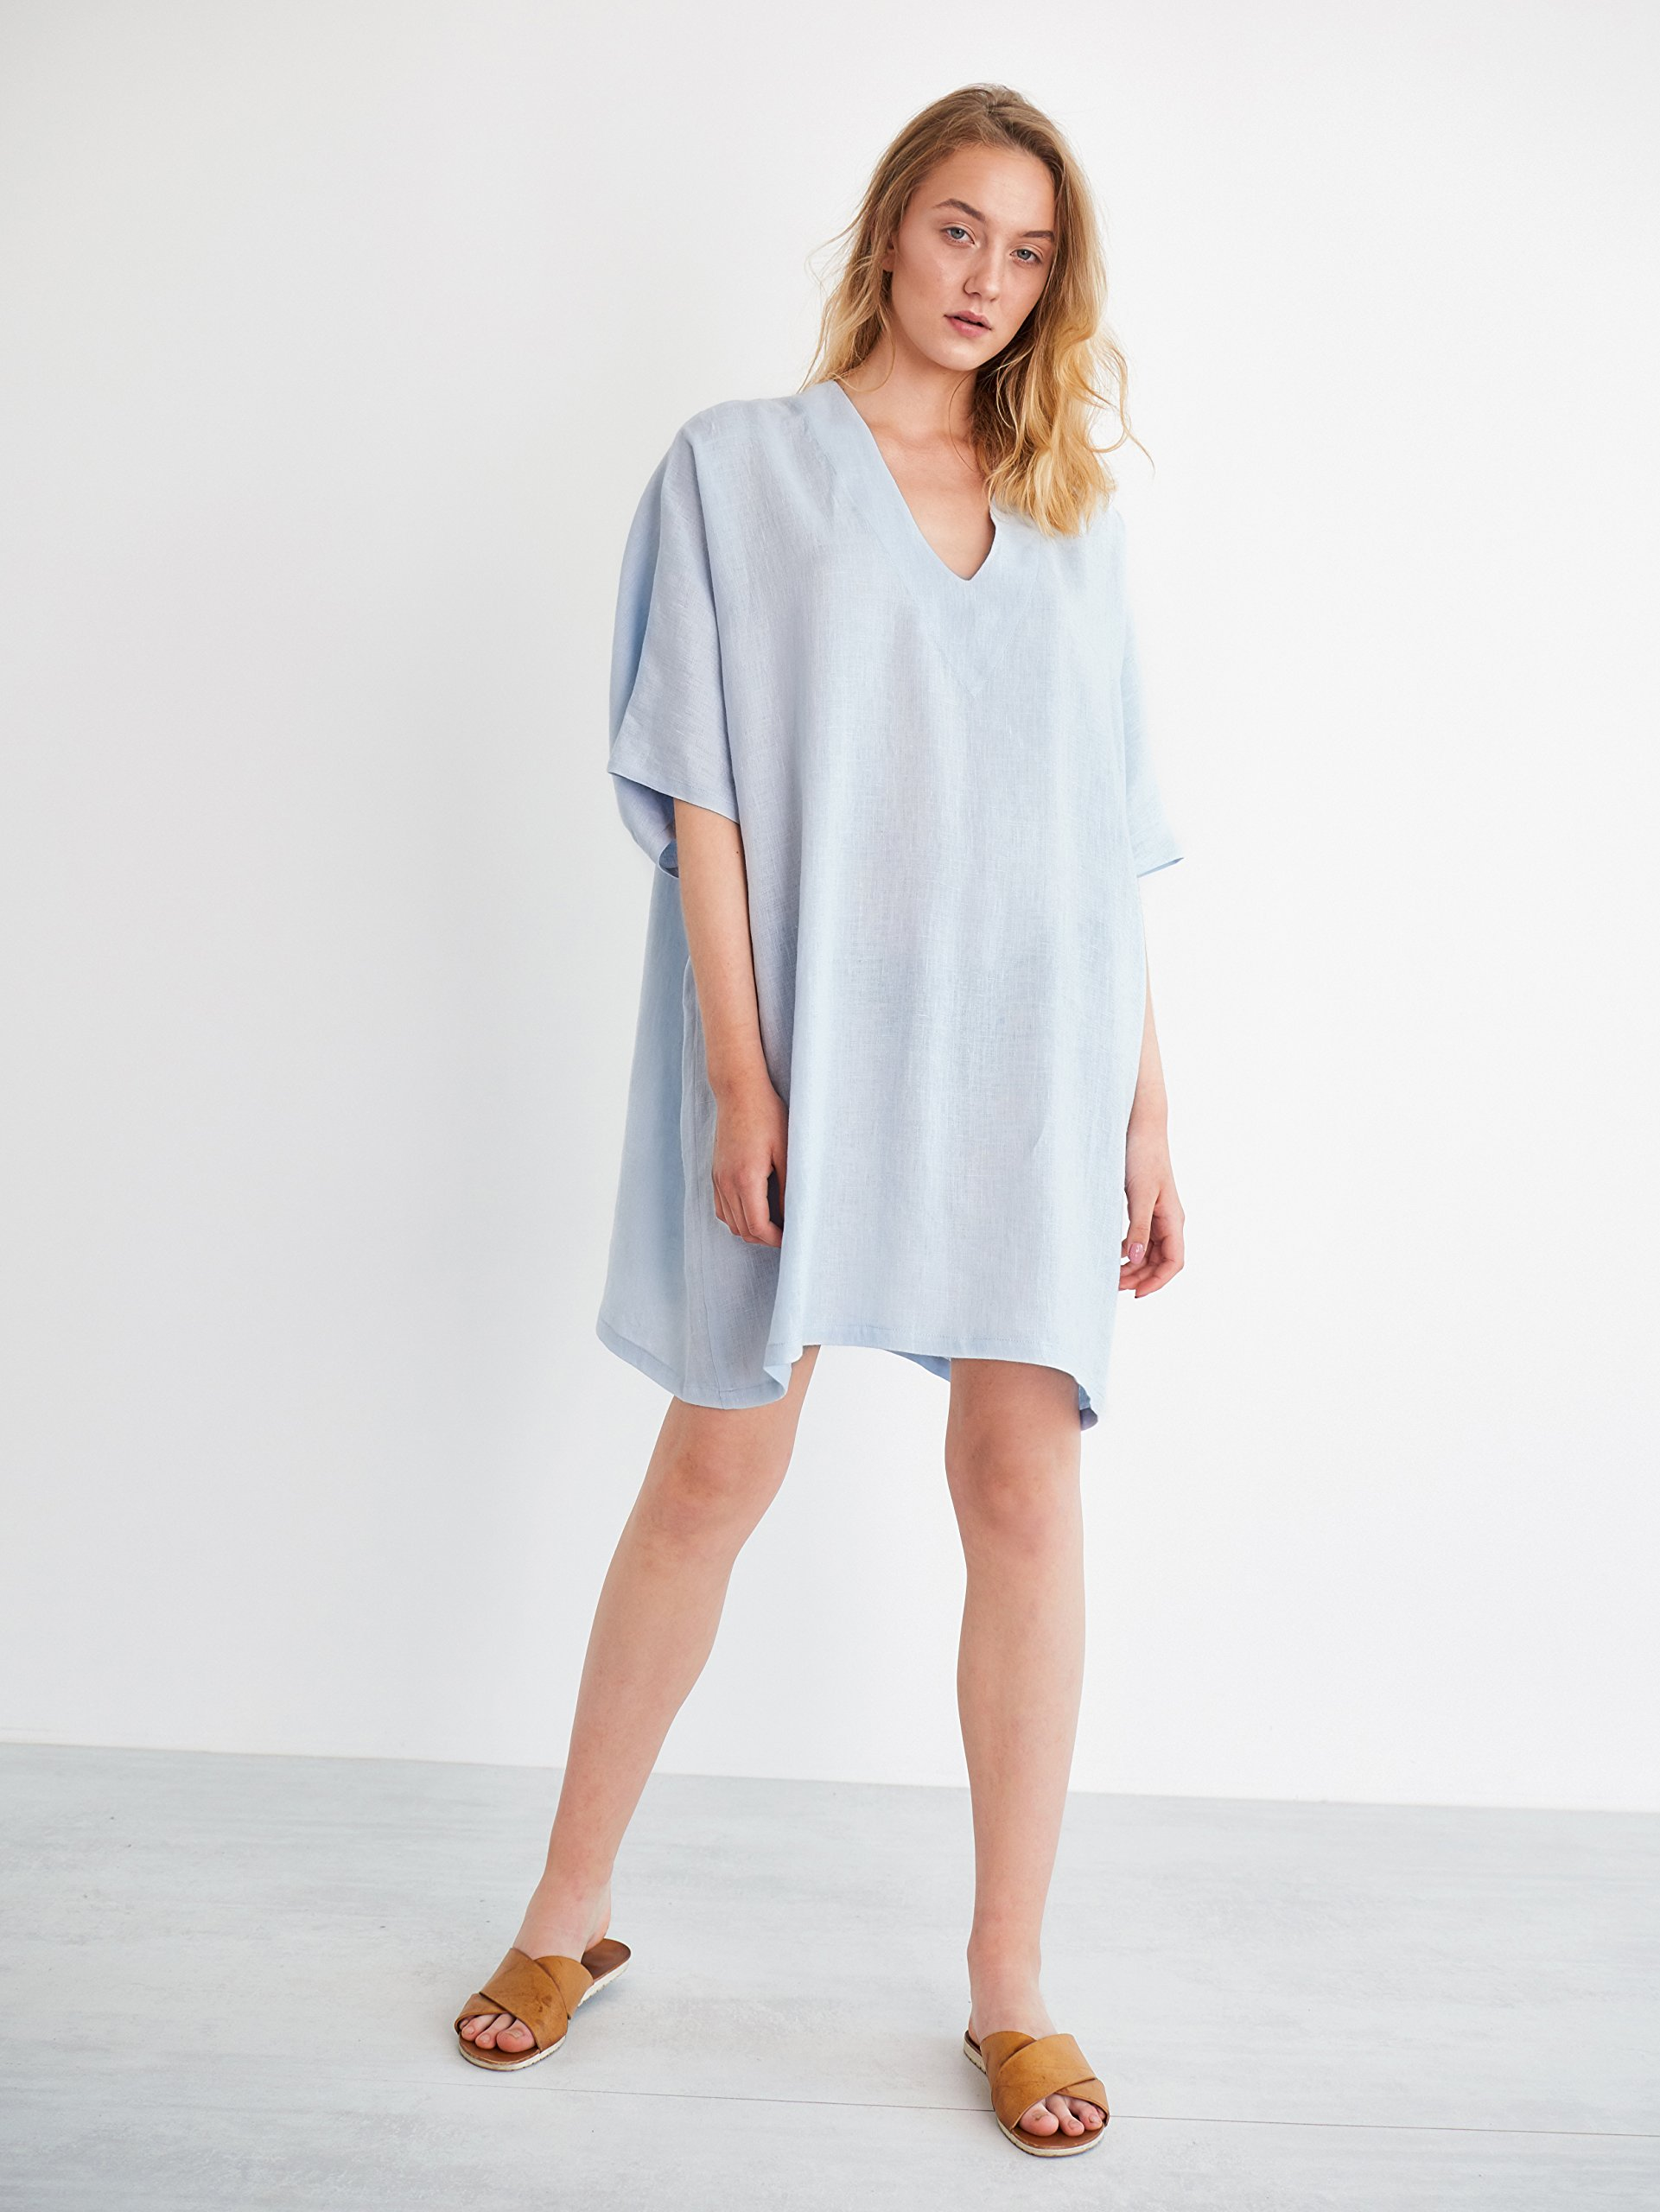 APRIL Linen Tunic Dress in Baby Blue Short Sleeve Oversized Loose Fit Plus Size Midi Summer Dress Ladies Women